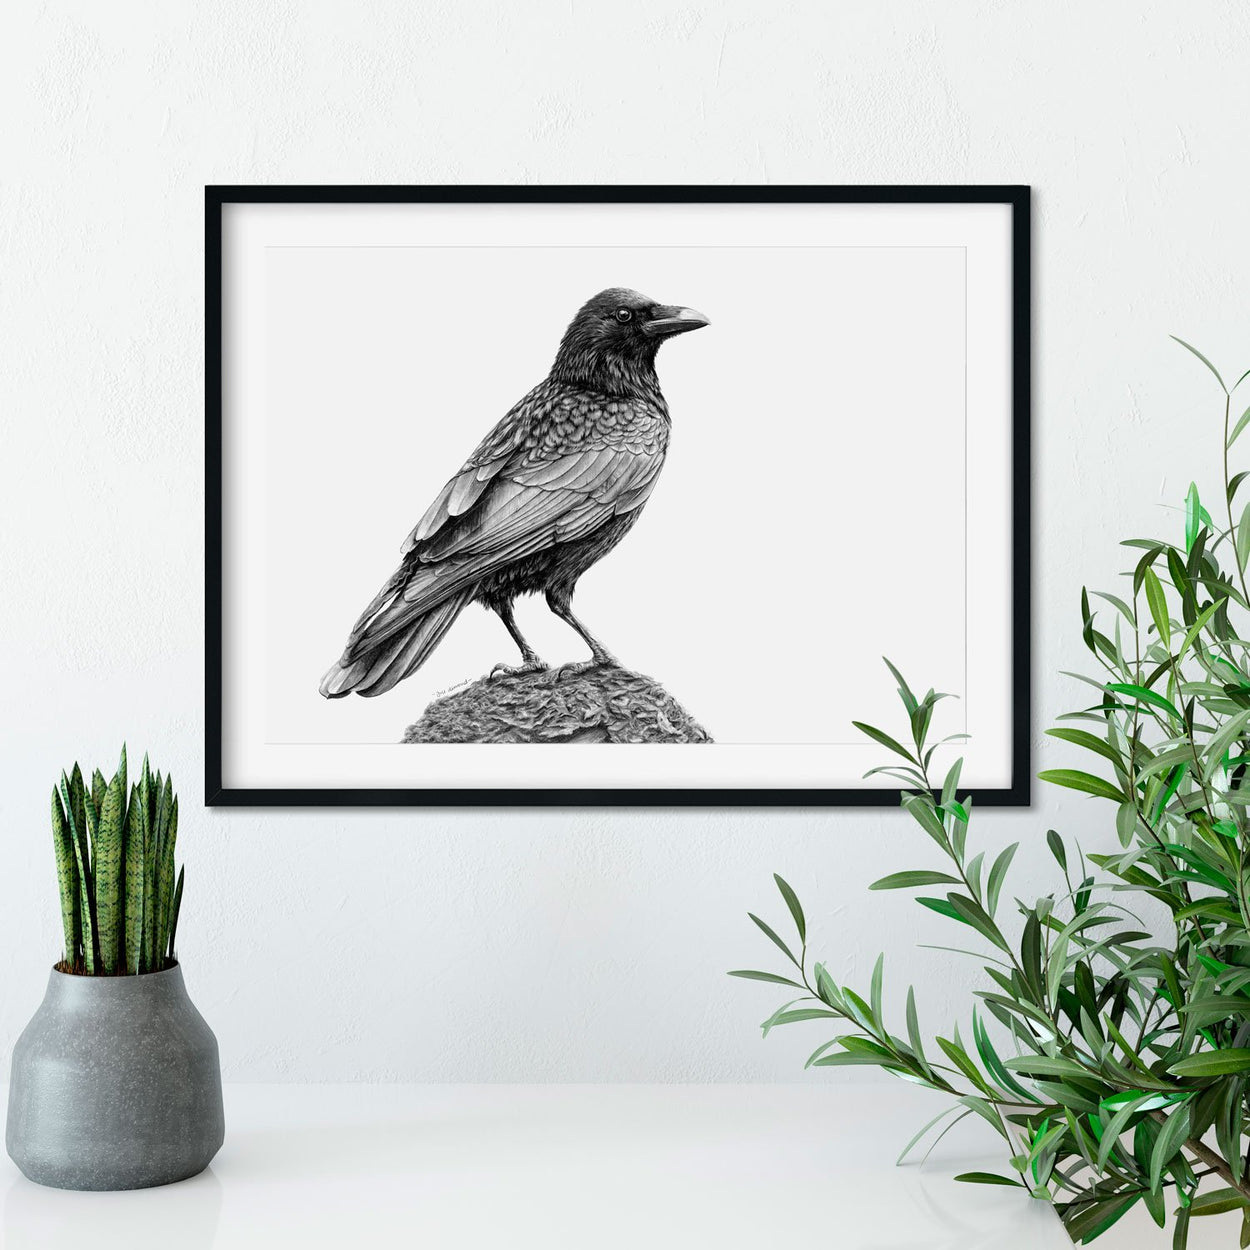 Crow Pencil Drawing on Wall - The Thriving Wild